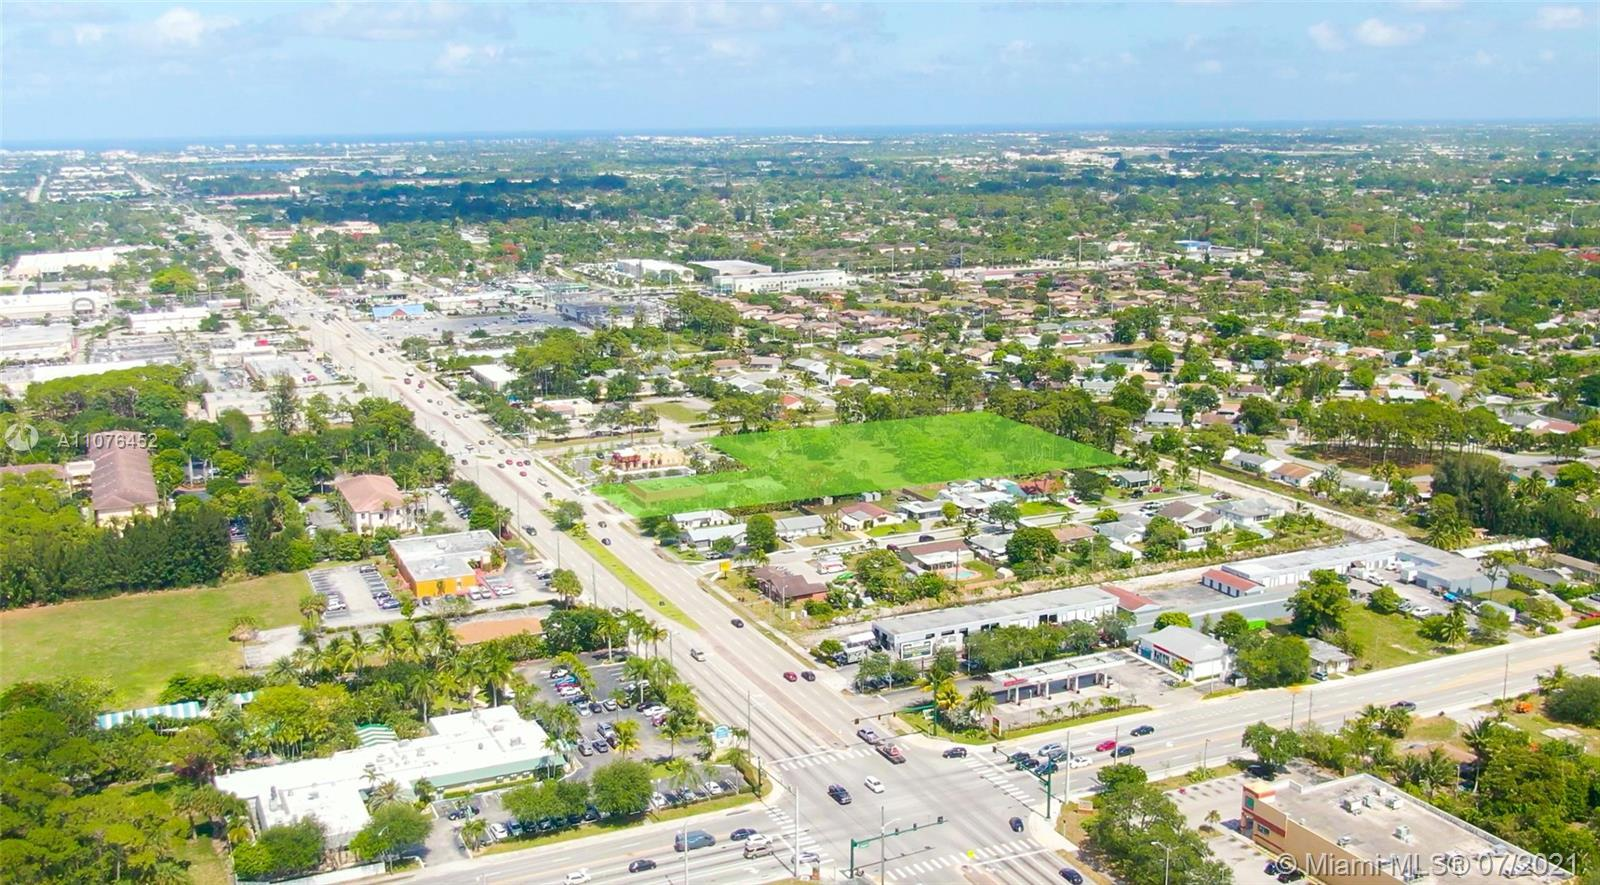 RESF Commercial is pleased to present a (3) Folio Assemblage totaling 3.62 Acres perfect for retail